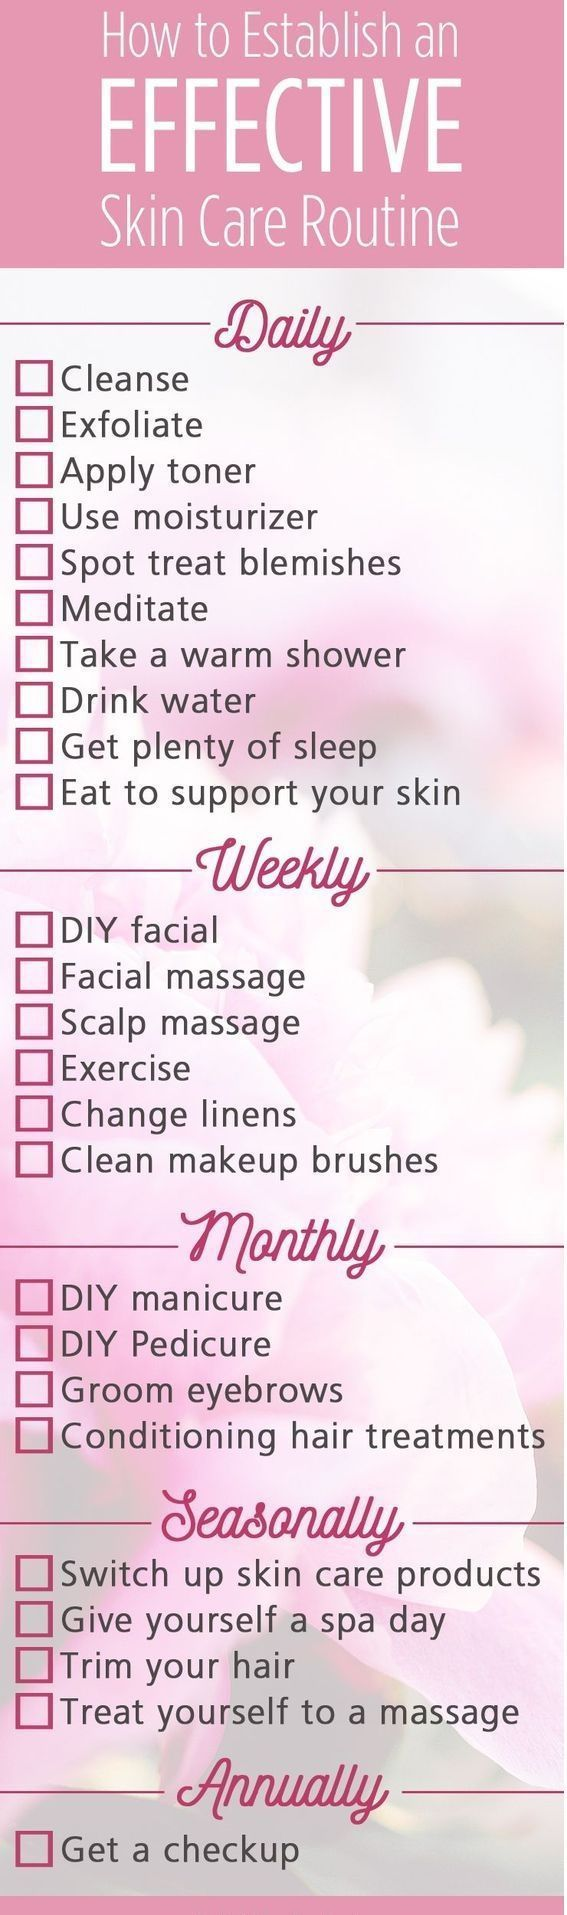 skin care routine steps, daily skin care routine at home, skin care routine for acne, skin care routine for dry skin, skin care routine 30s, skin care routine for 20s, best skin care routine for 40s, skincare routine order #skincareroutineantiaging